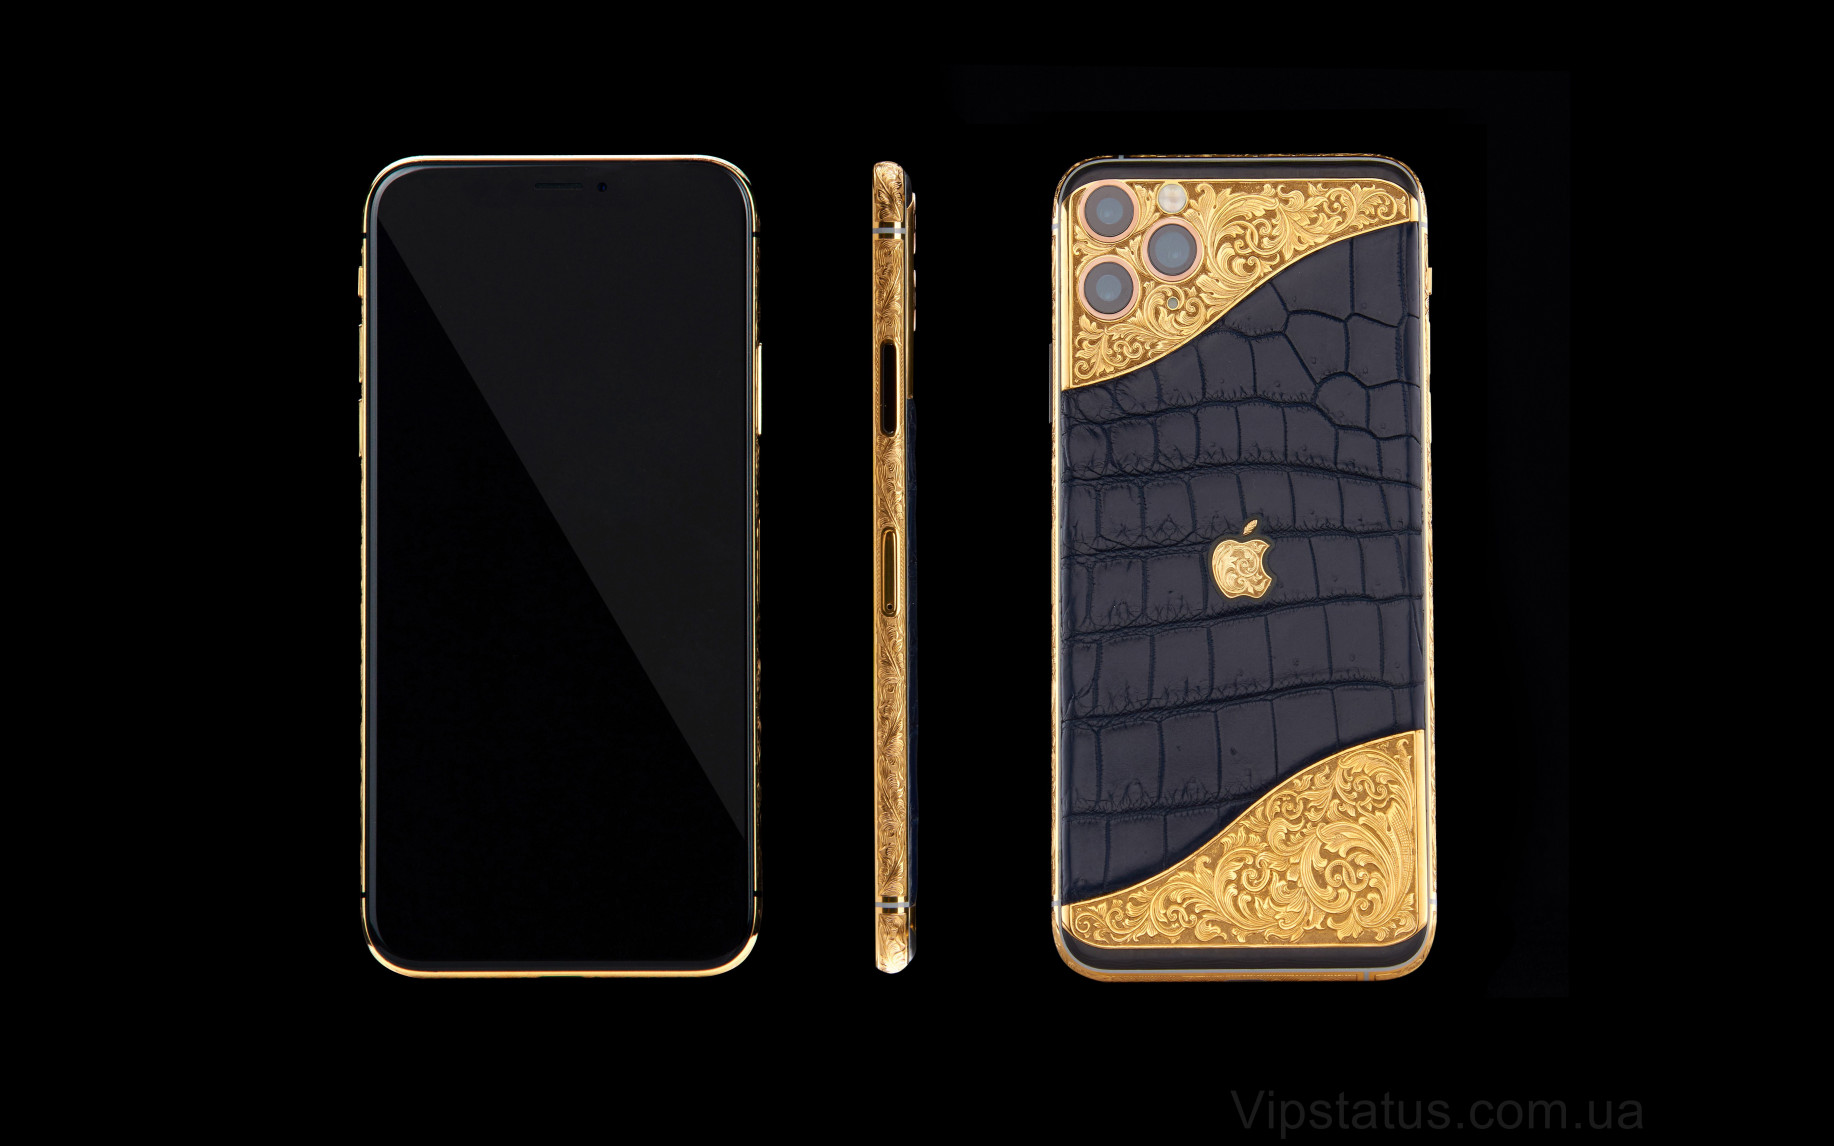 Элитный Gold Aristocrate IPHONE 11 PRO MAX 512 GB Gold Aristocrate IPHONE 11 PRO MAX 512 GB изображение 6